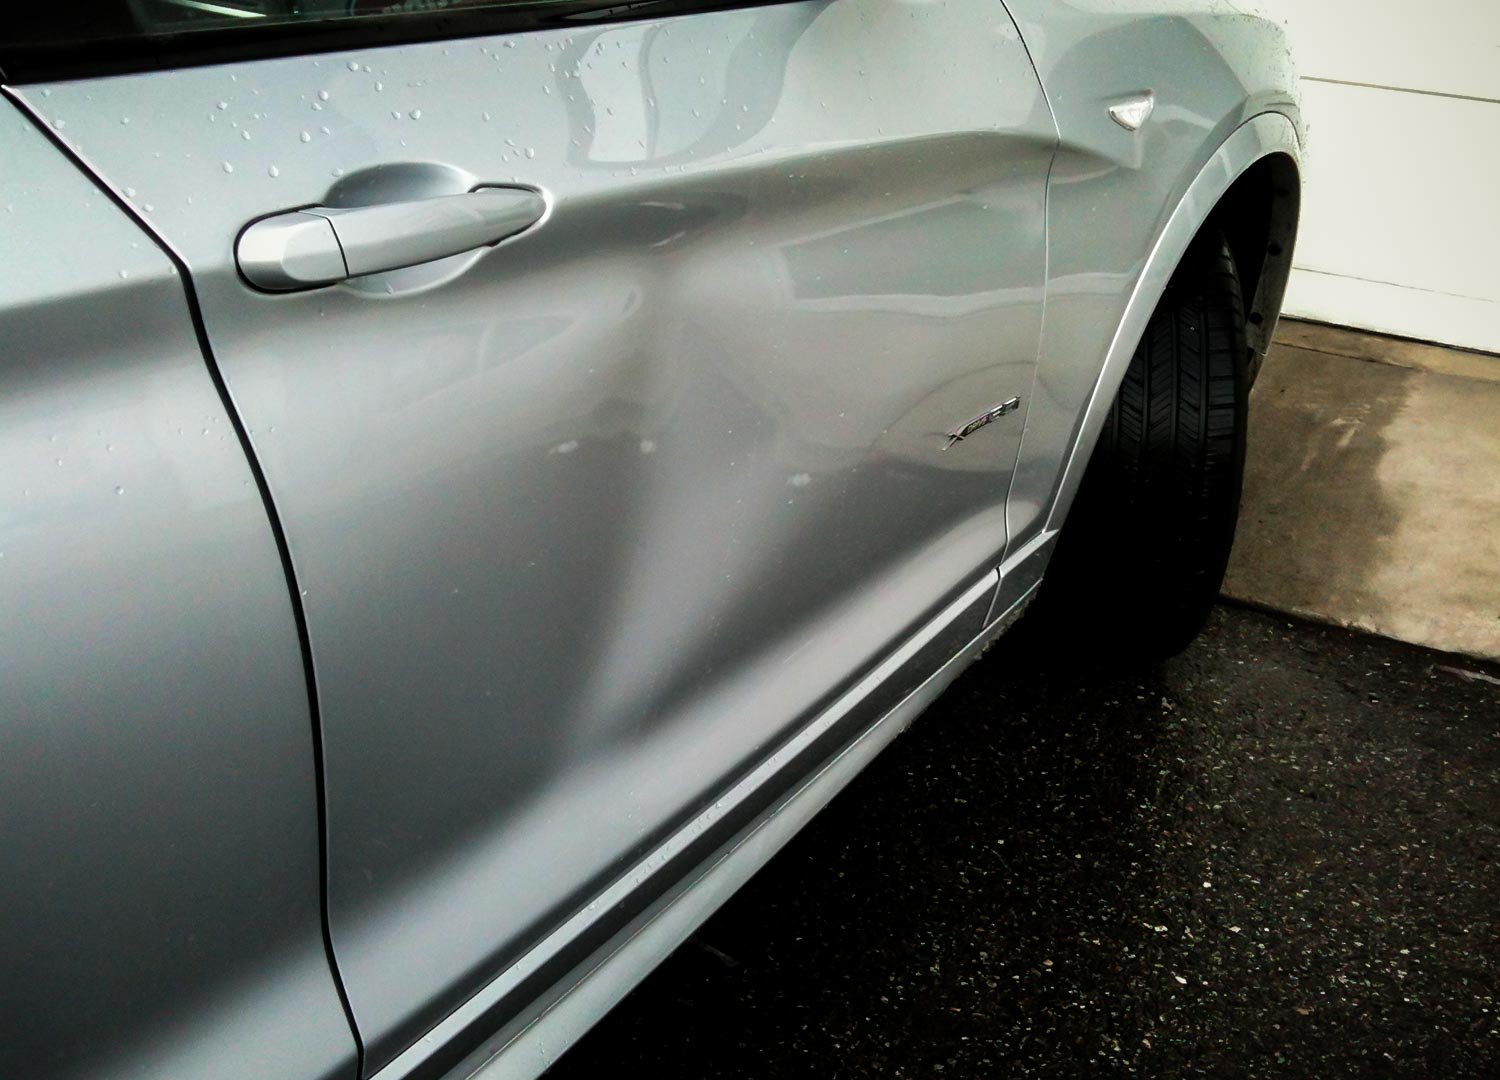 Year2013; MakeBMW; ModelX3; Dent LocationDoor Panel; ShopKelowna & 2013 BMW X3 dent in door panel - Dentique Paintless Dent Repair